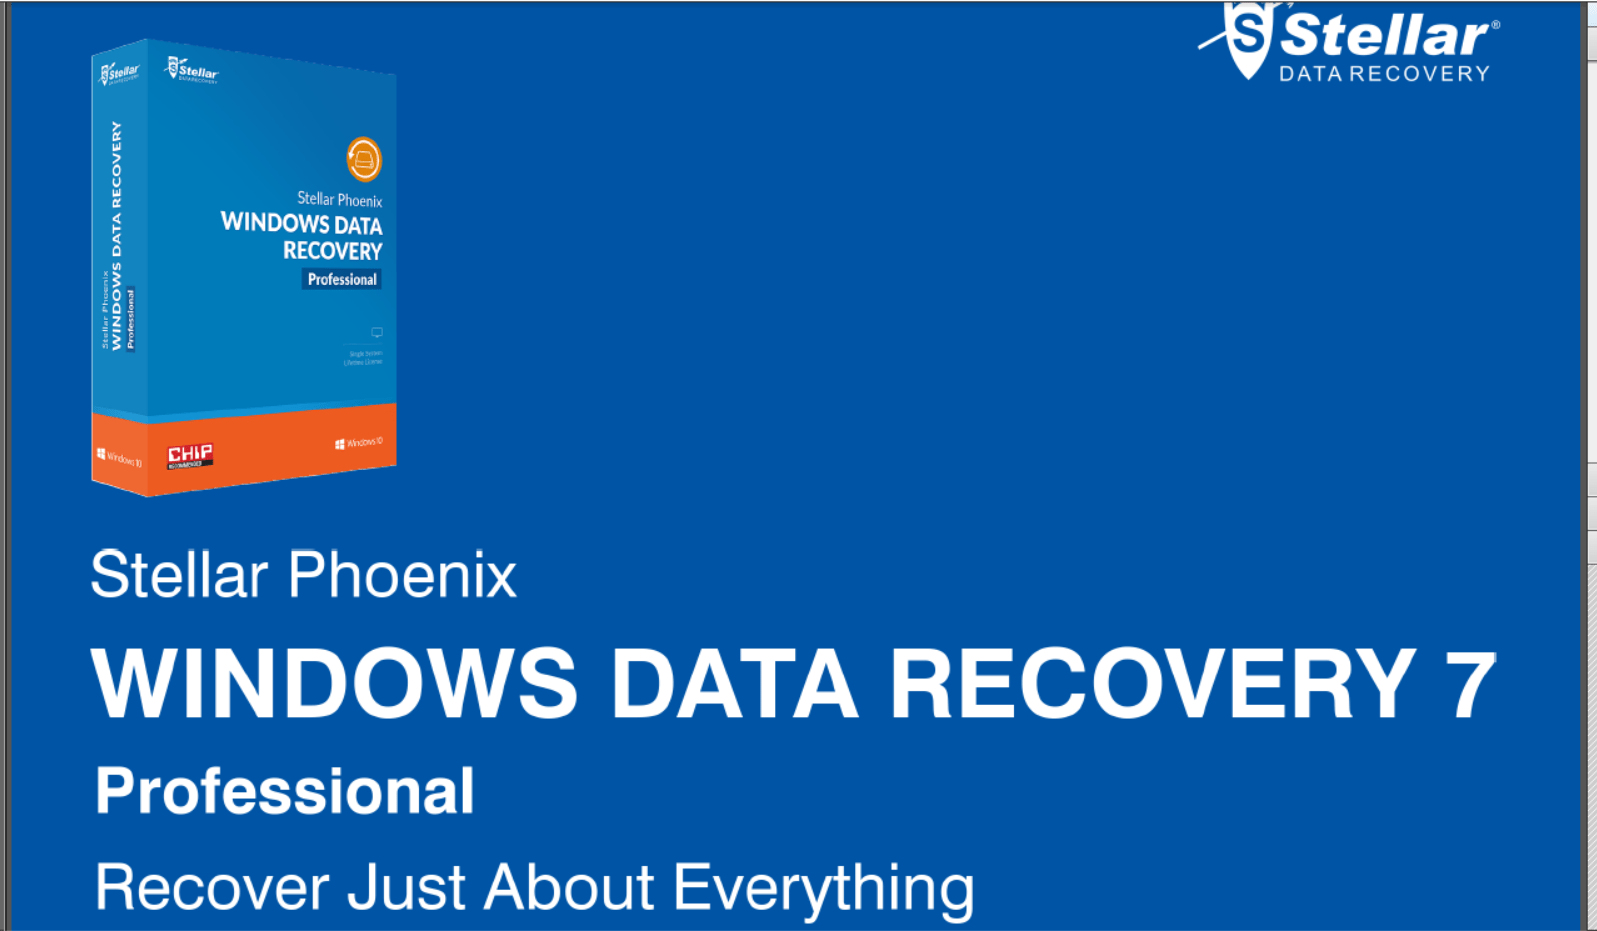 [Review]Stellar Phoenix Windows Data Recovery 7- Professional